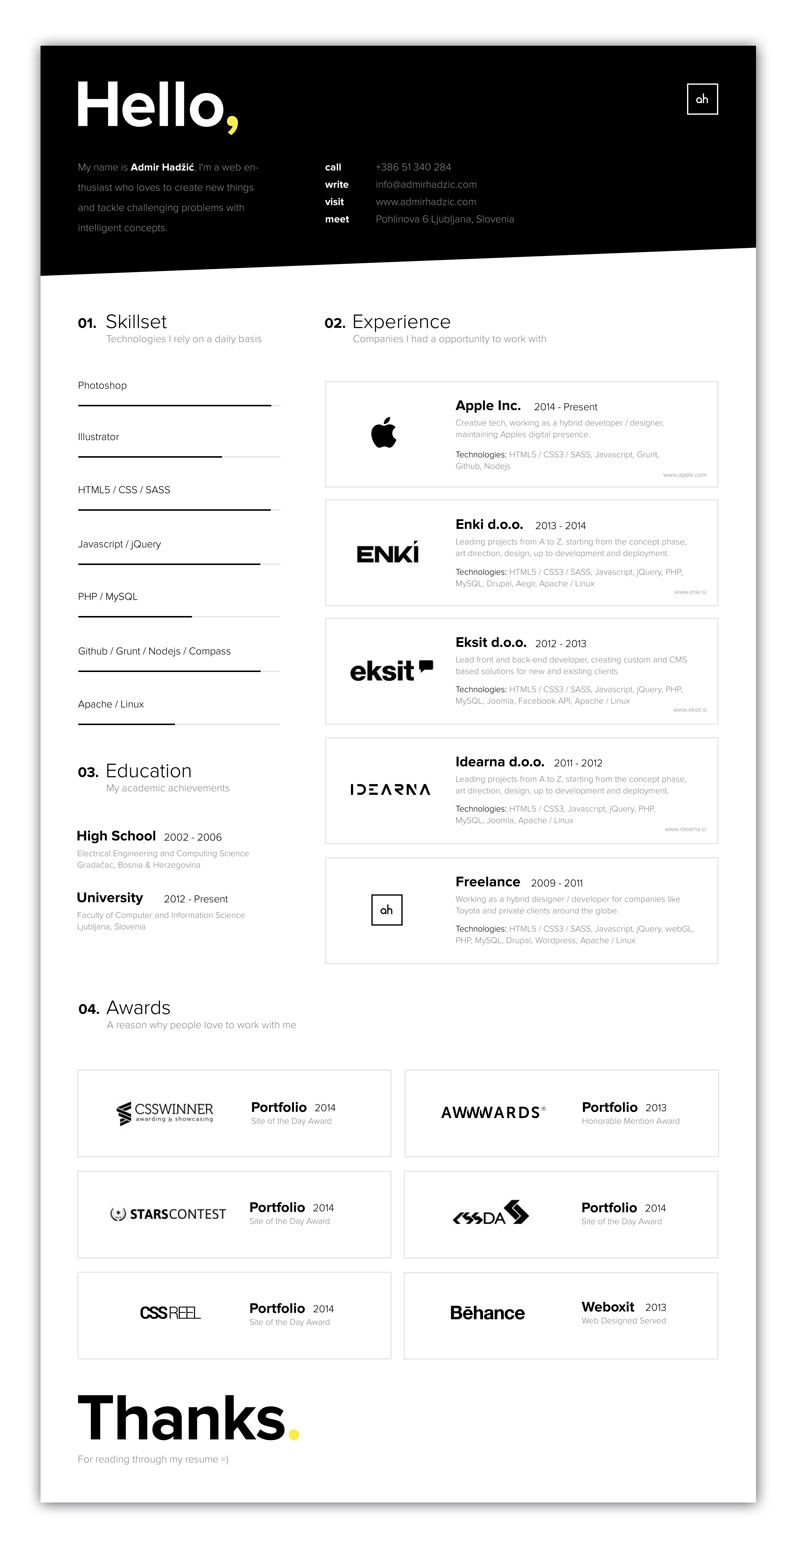 indesign cv resume inspiration minimal color amir hadzic | Design ...